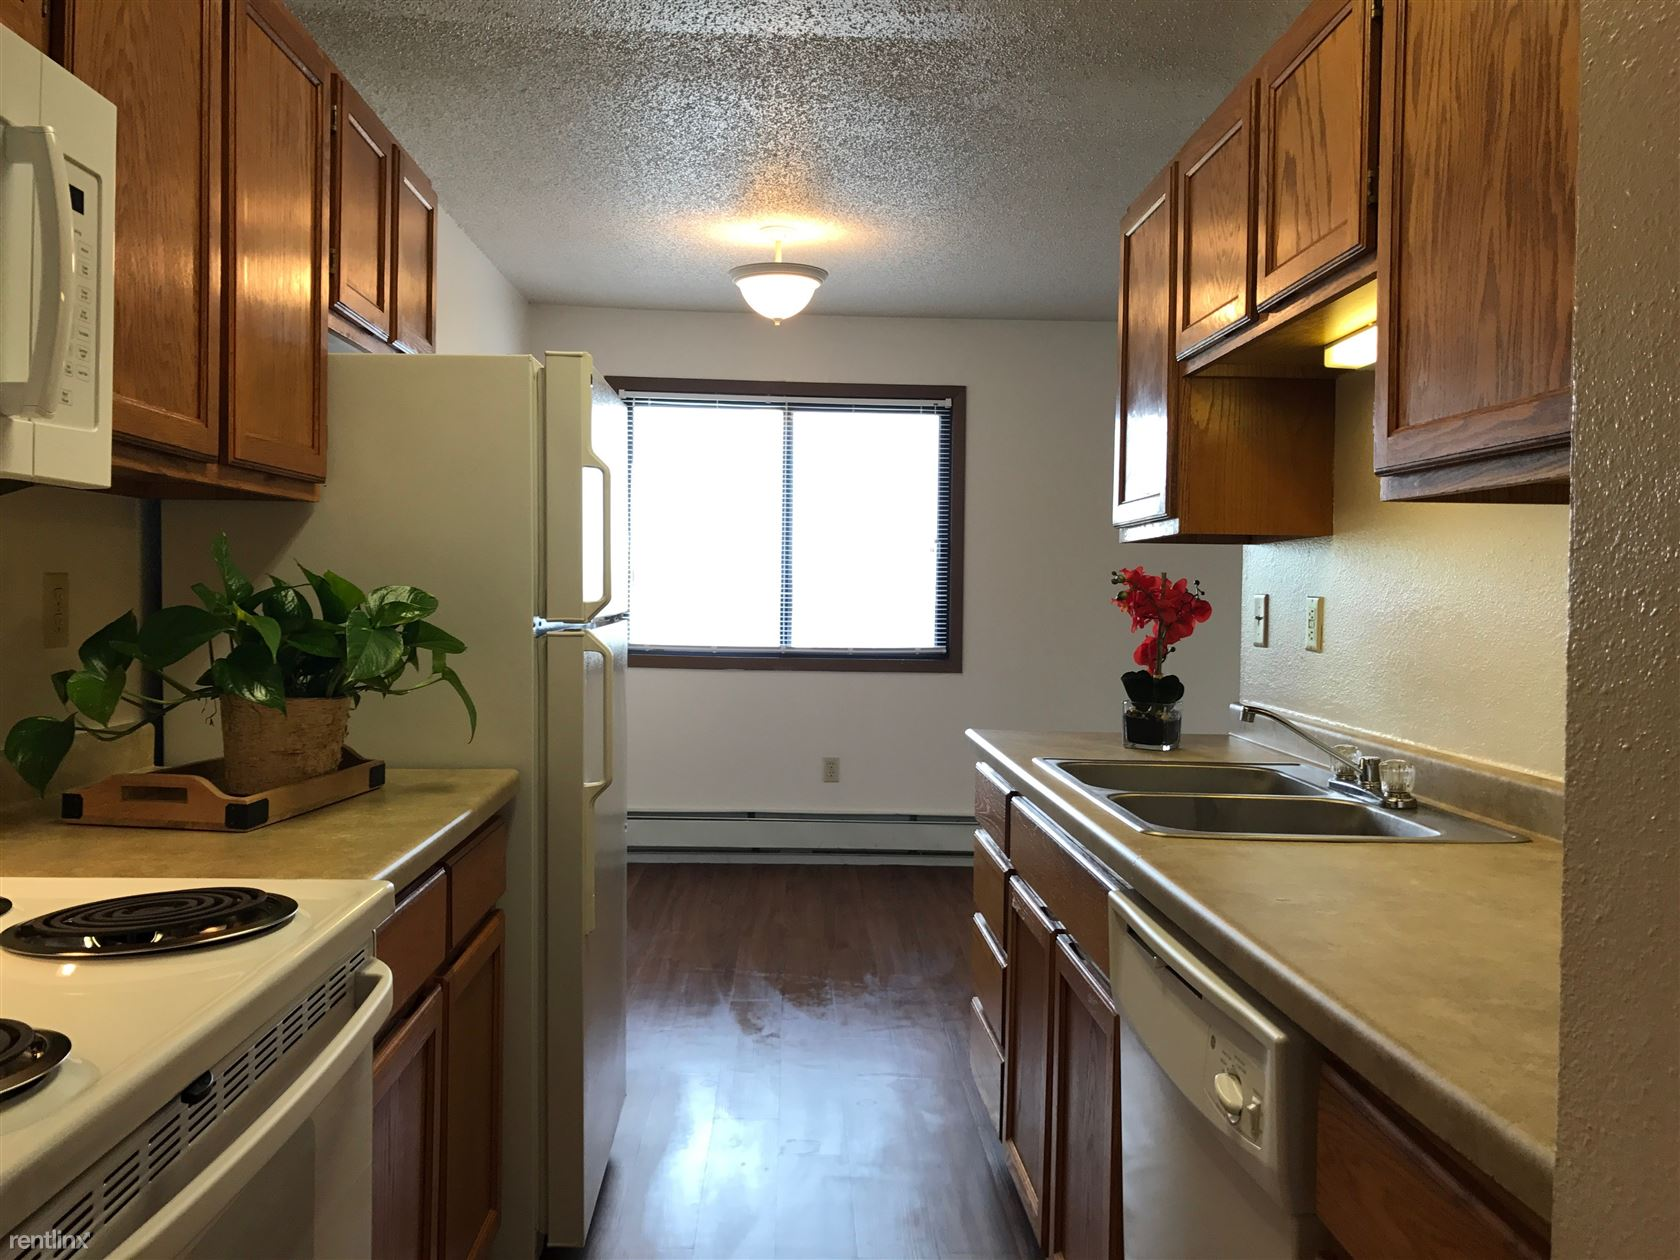 1409 14th Ave E, West Fargo, ND - $825